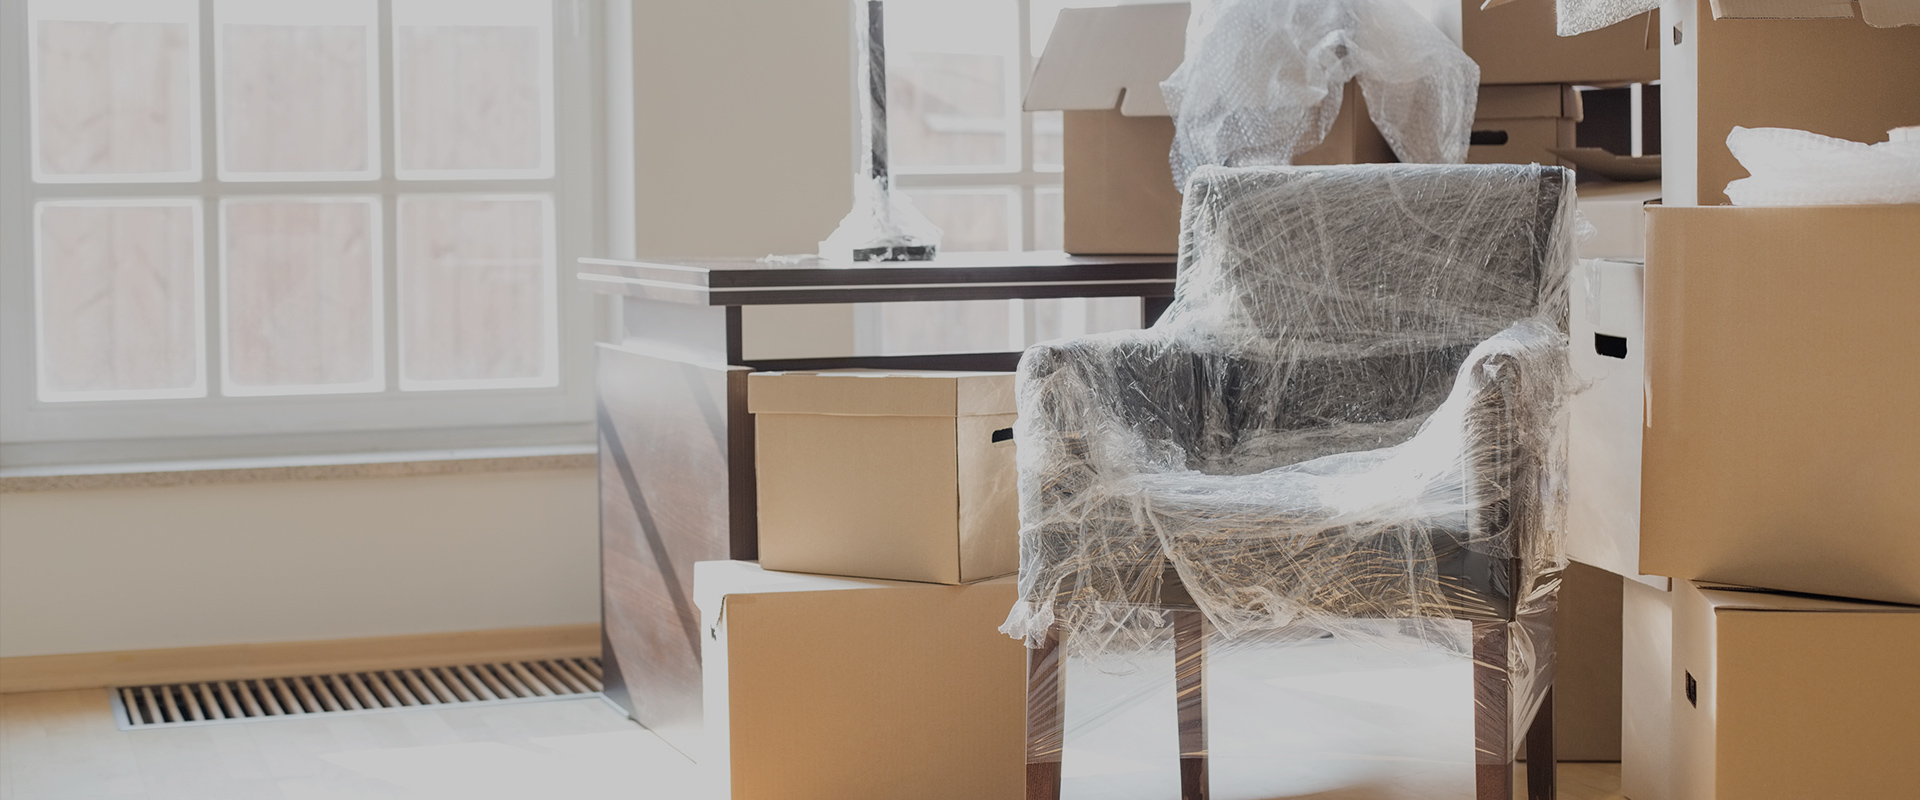 Why should I hire a packing service for my home/office move?